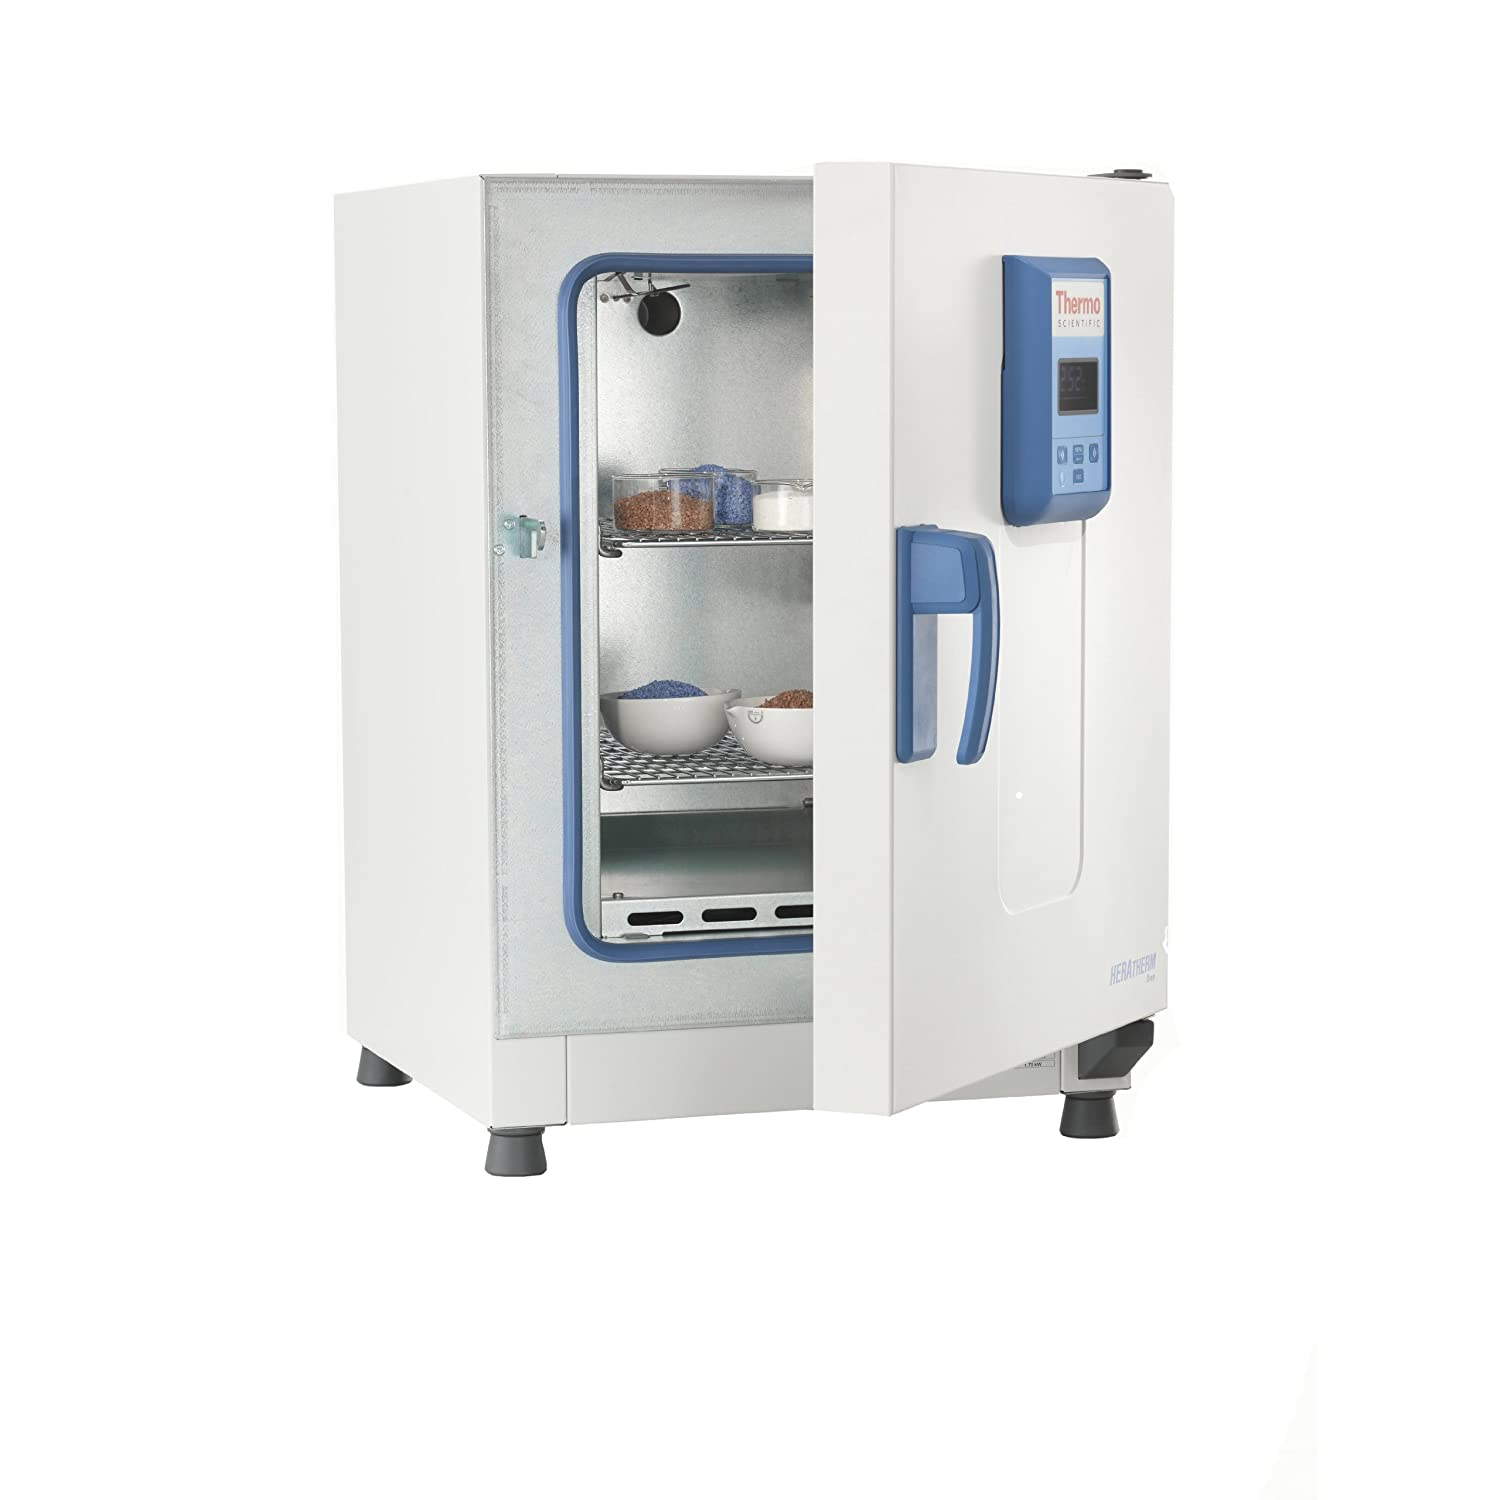 Thermo Heratherm Model OGS60 General Protocol Laboratory Oven, Gravity Convection, 120V, 2.3cu ft Capacity